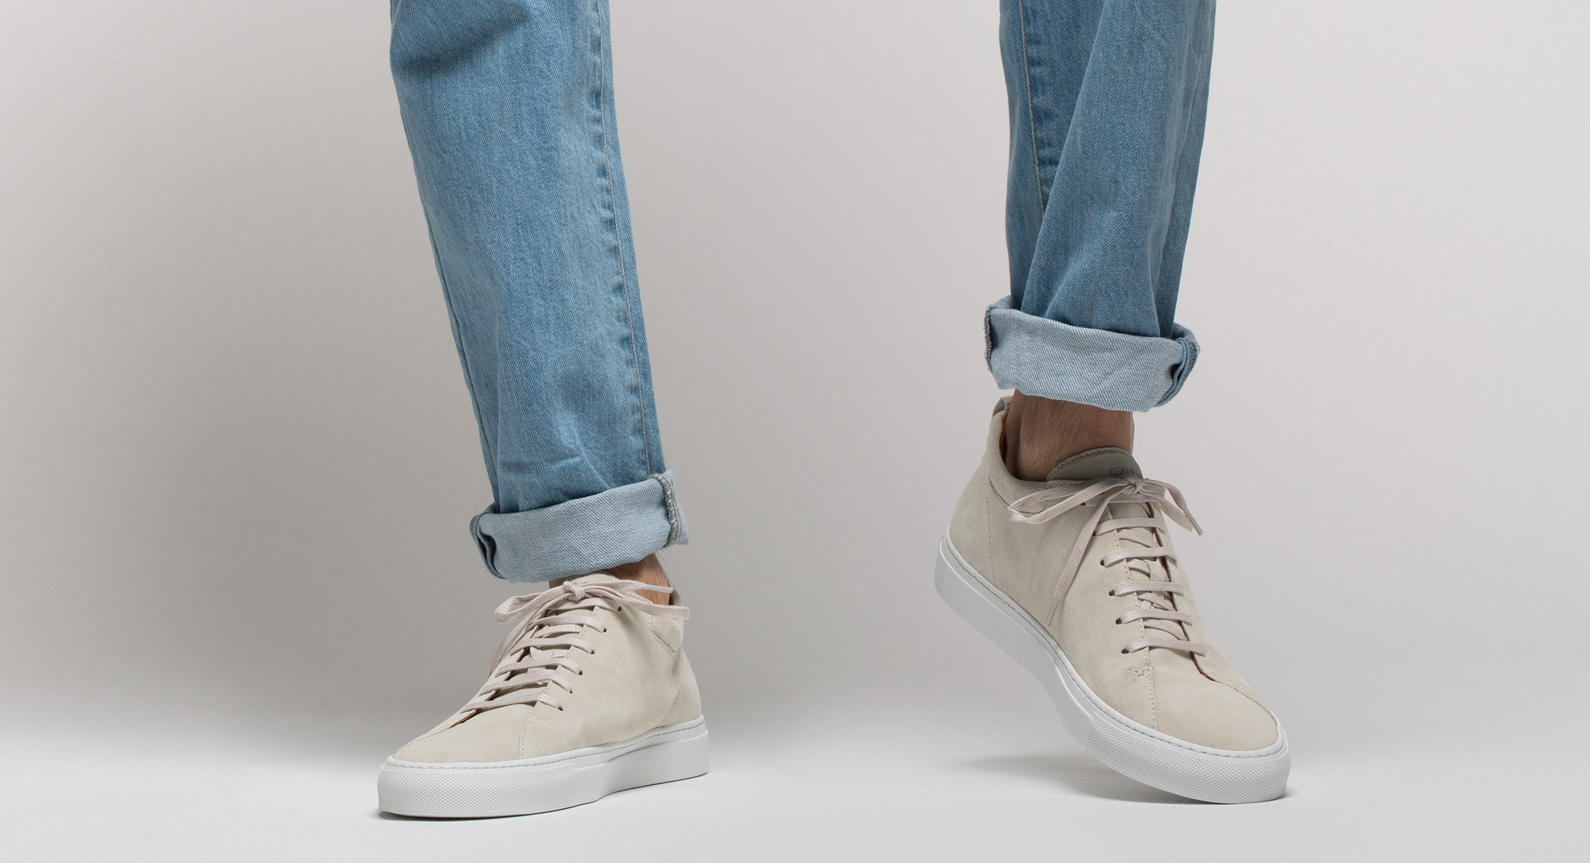 CQP - The Sneakers You Should Be Wearing Right Now